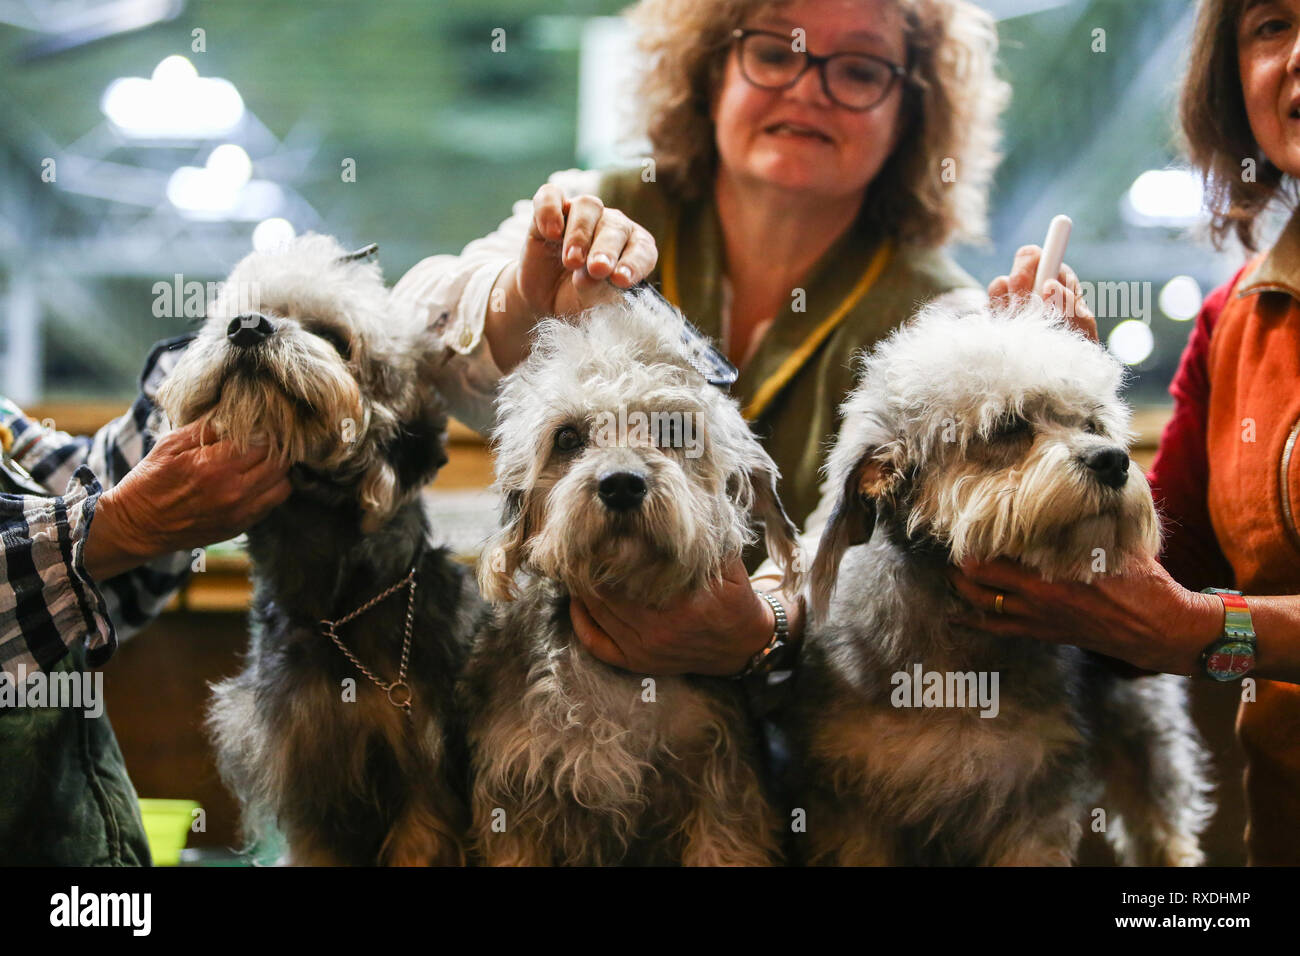 Birmingham, UK. 9th March, 2019. Three terriers receive a last minute spruce before the show. Credit: Peter Lopeman/Alamy Live News - Stock Image